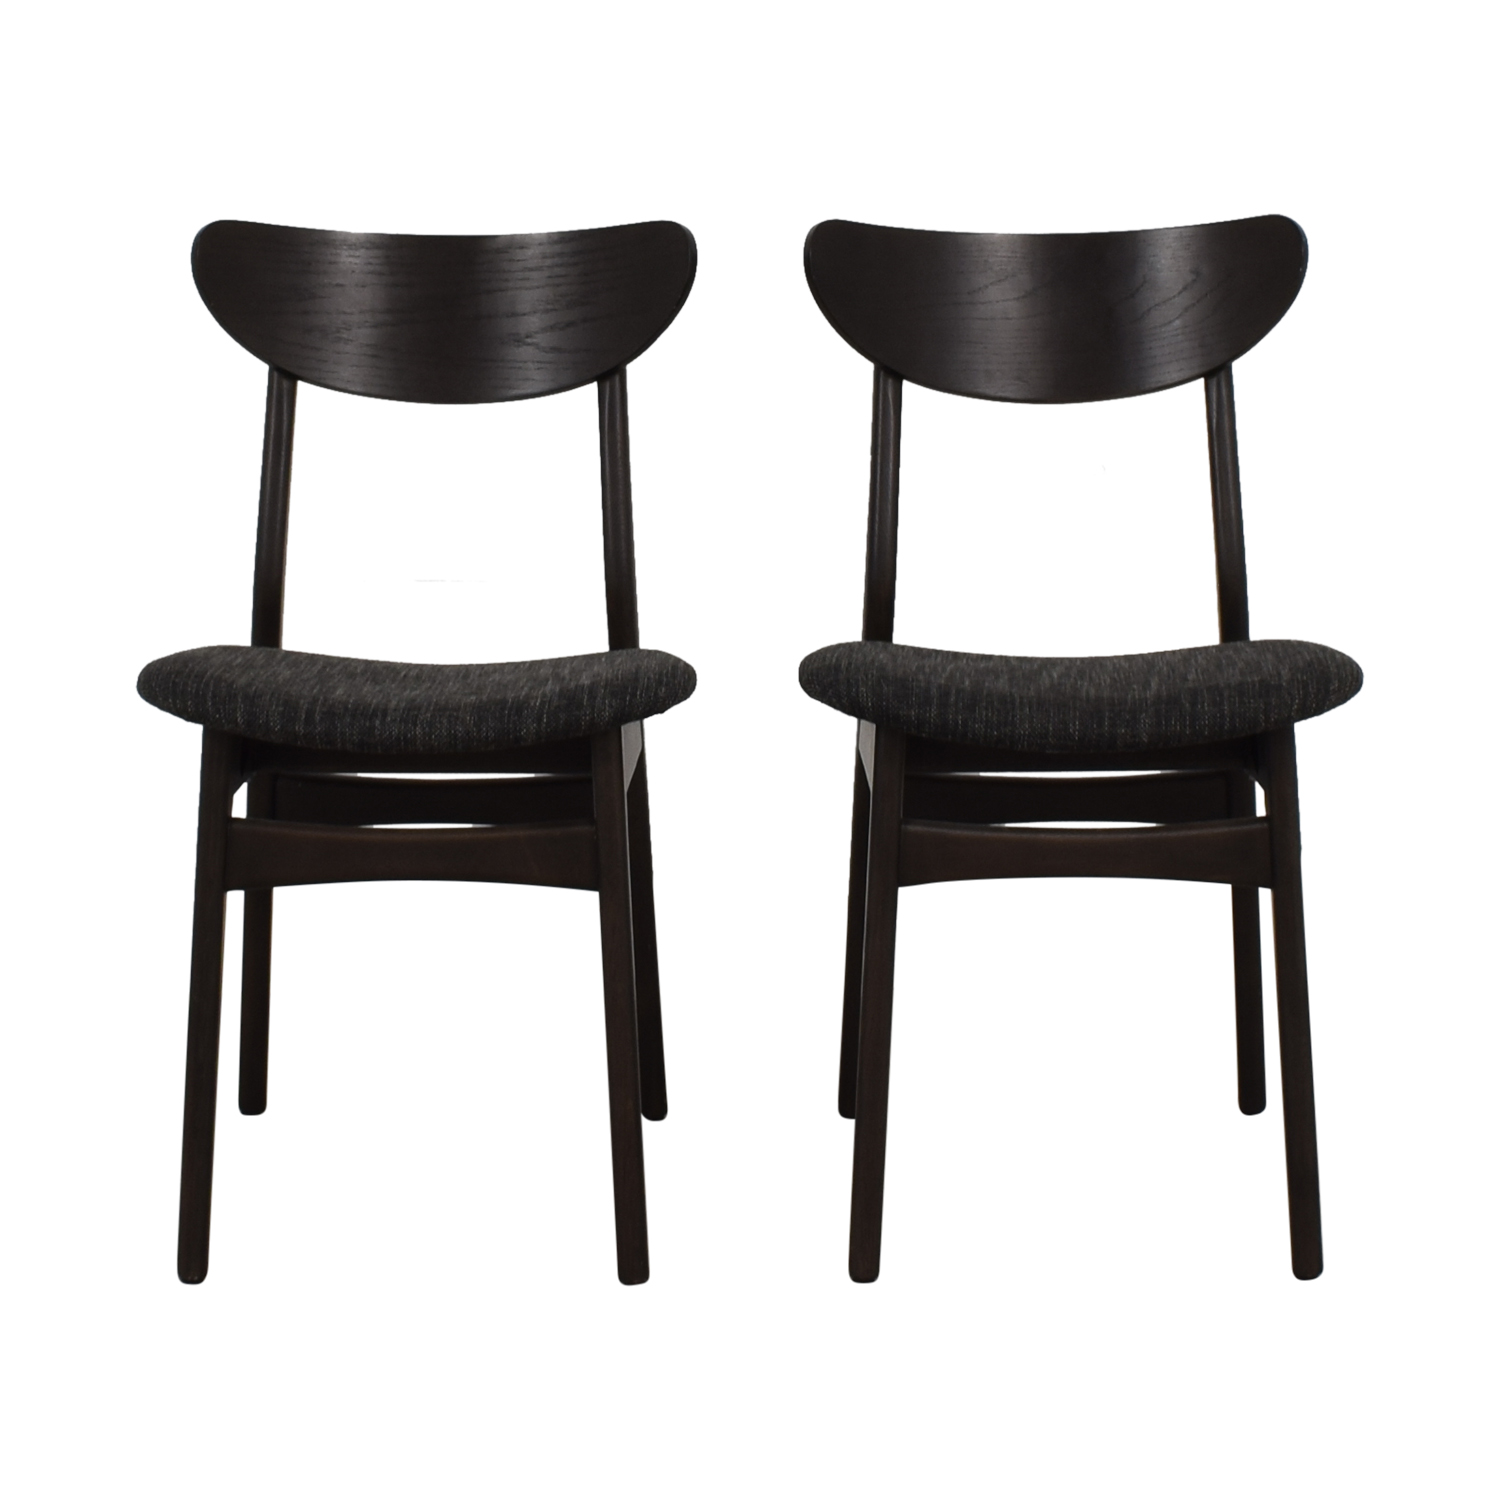 West Elm West Elm Classic Cafe Dining Chairs nj